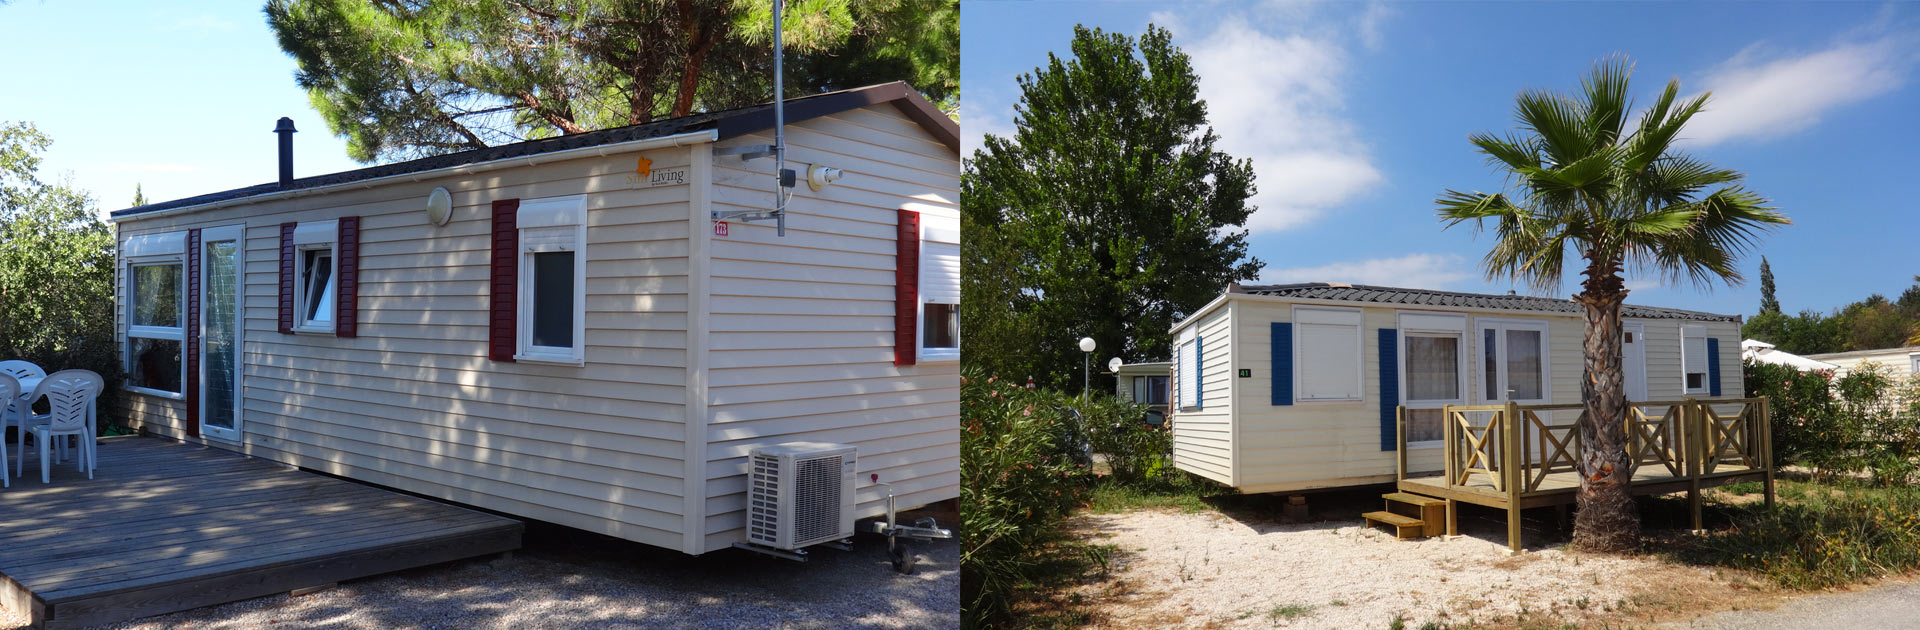 Mobil home occasion sur emplacement